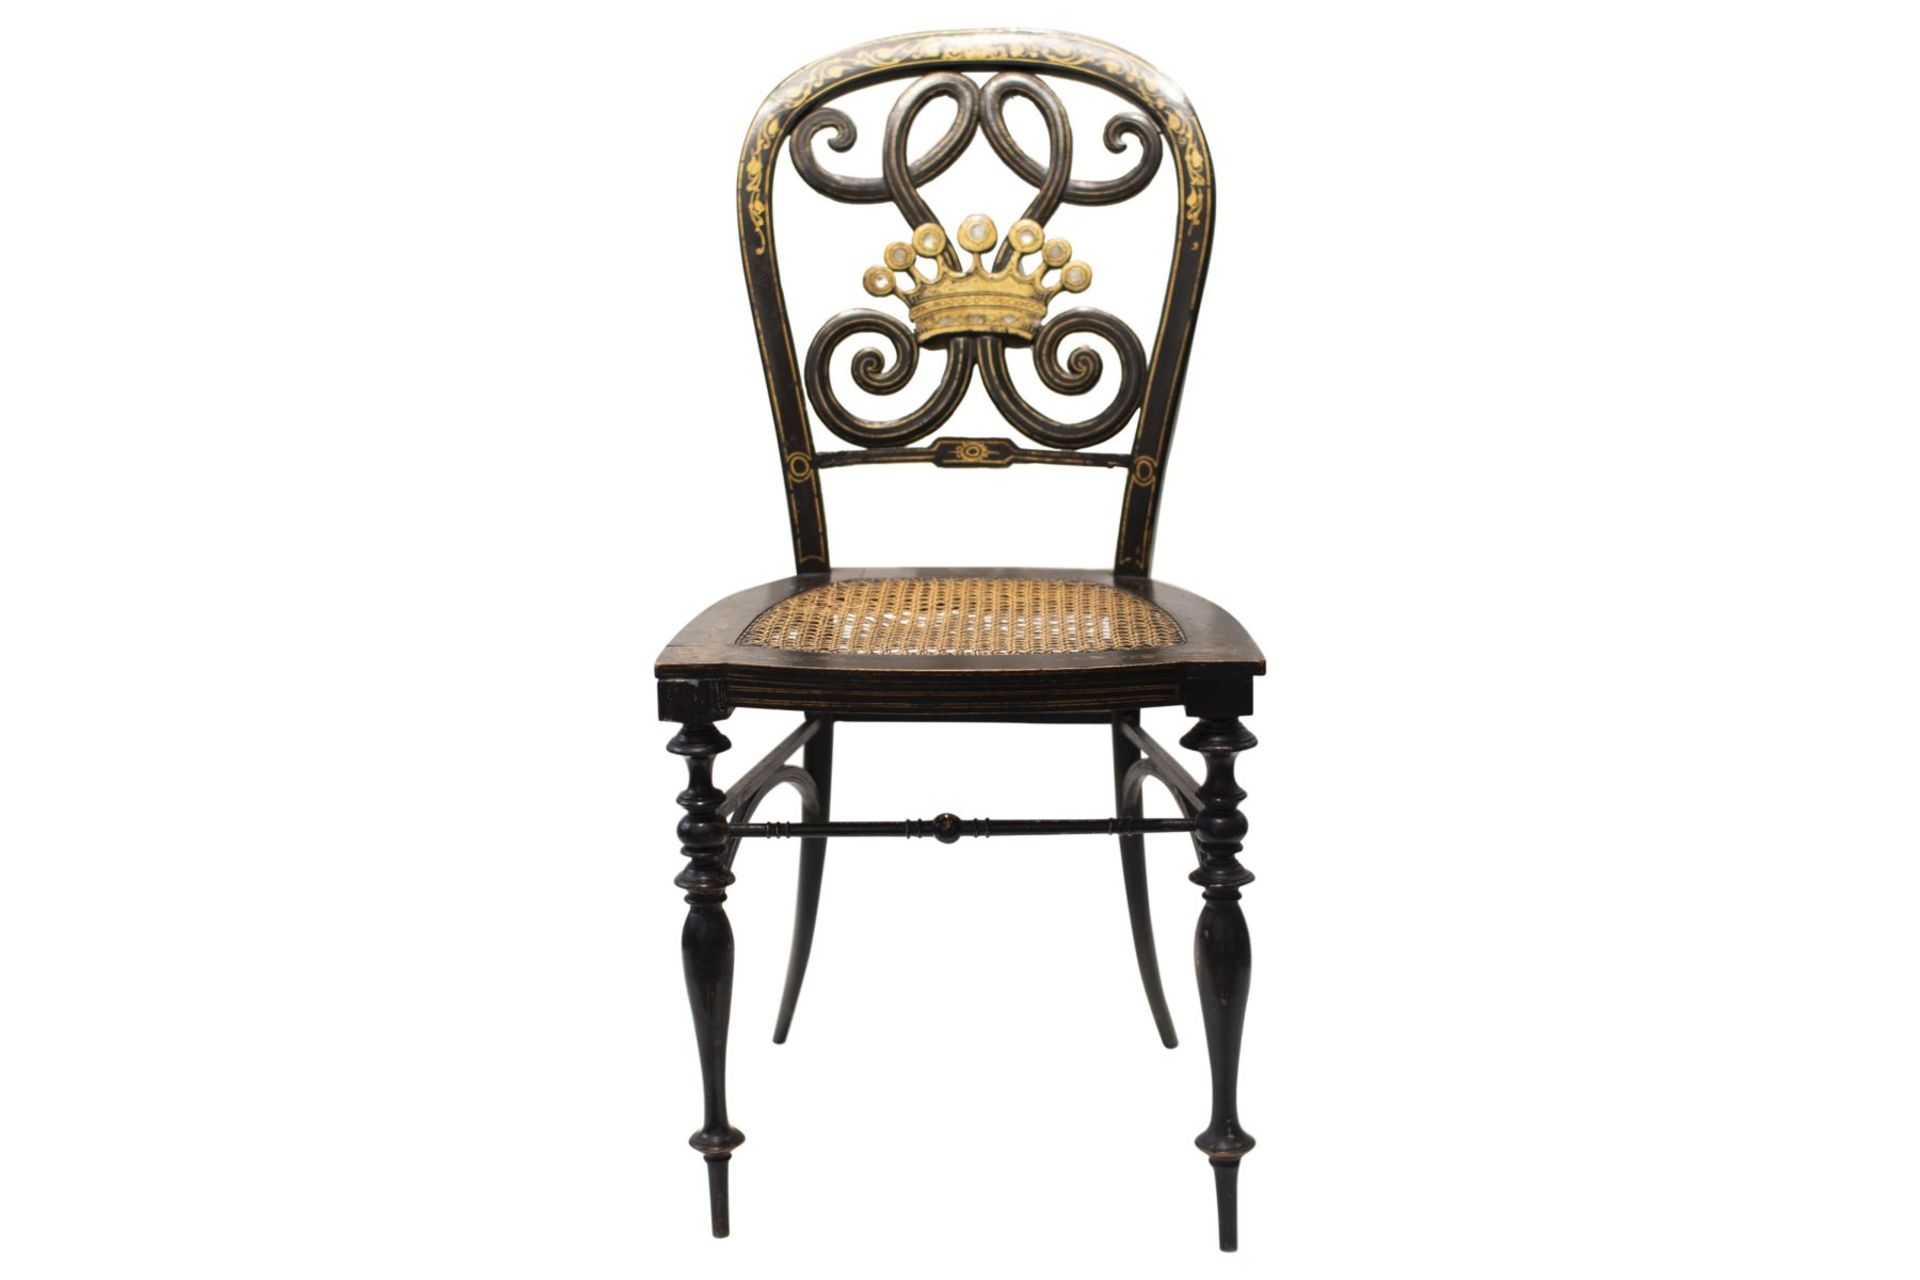 Decorative chair, French Chinoiserie - Image 6 of 7